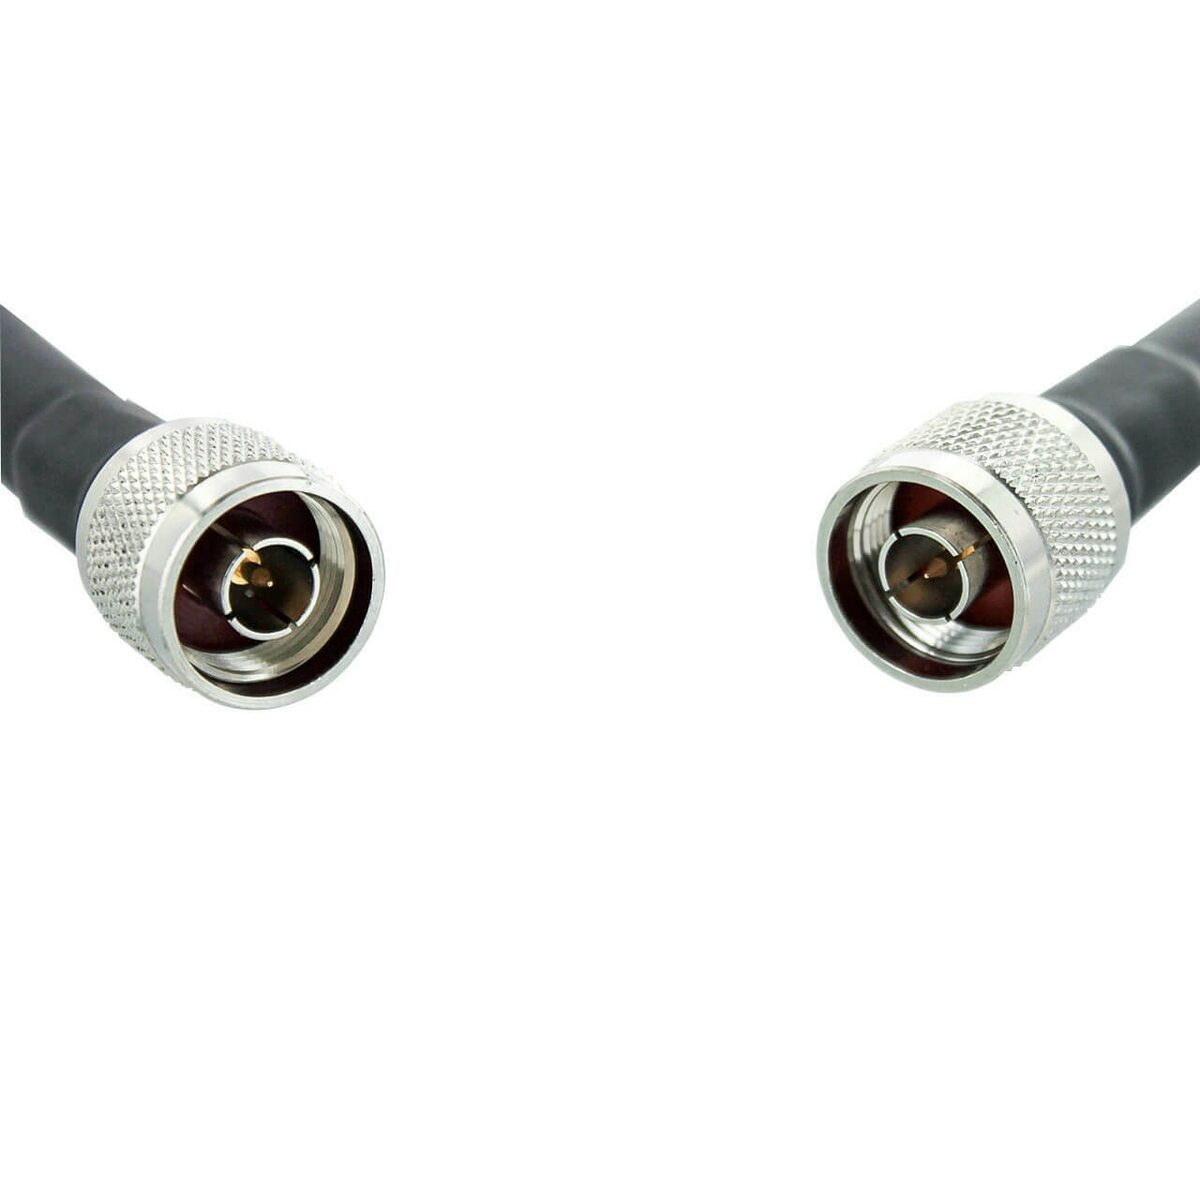 Bolton Technical N-Male to N-Male Bolton400 Ultra Low-Loss Coax Cable   50 ft. Cable